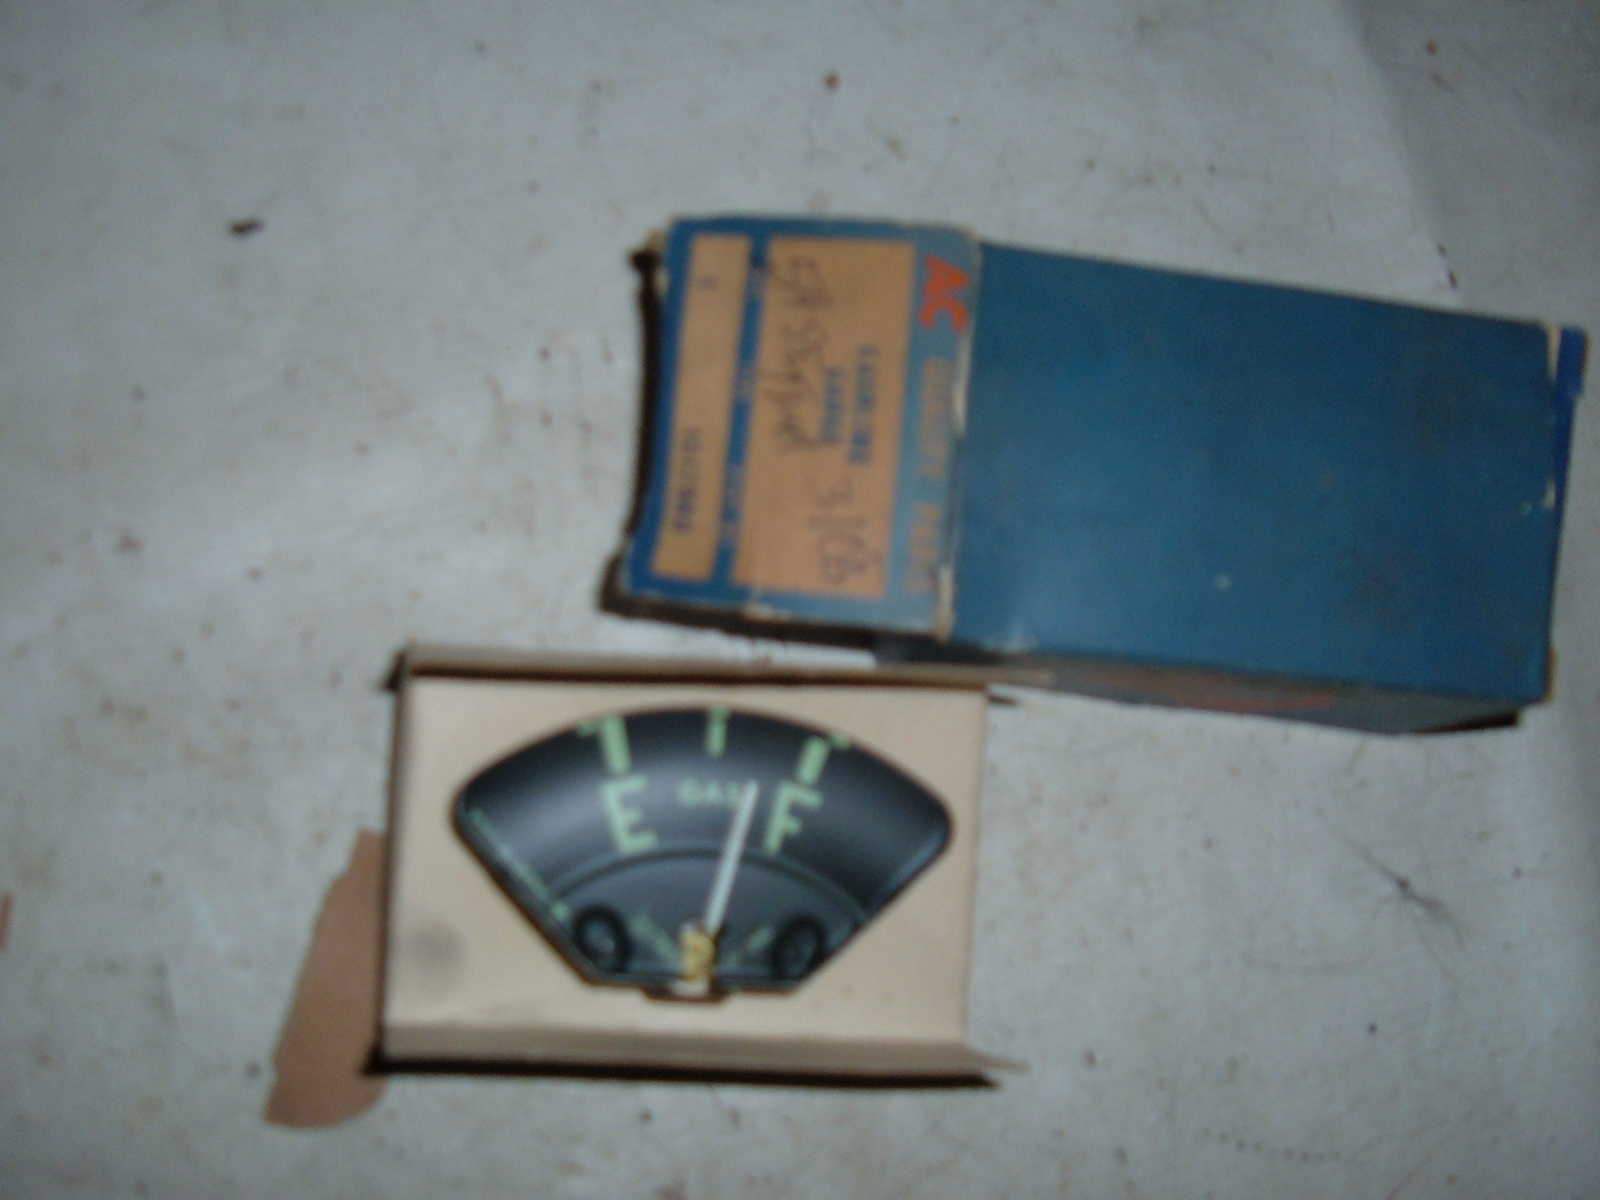 1954 55 chevrolet truck gas gauge dash unit nos gm 1517880 (z 1517880)